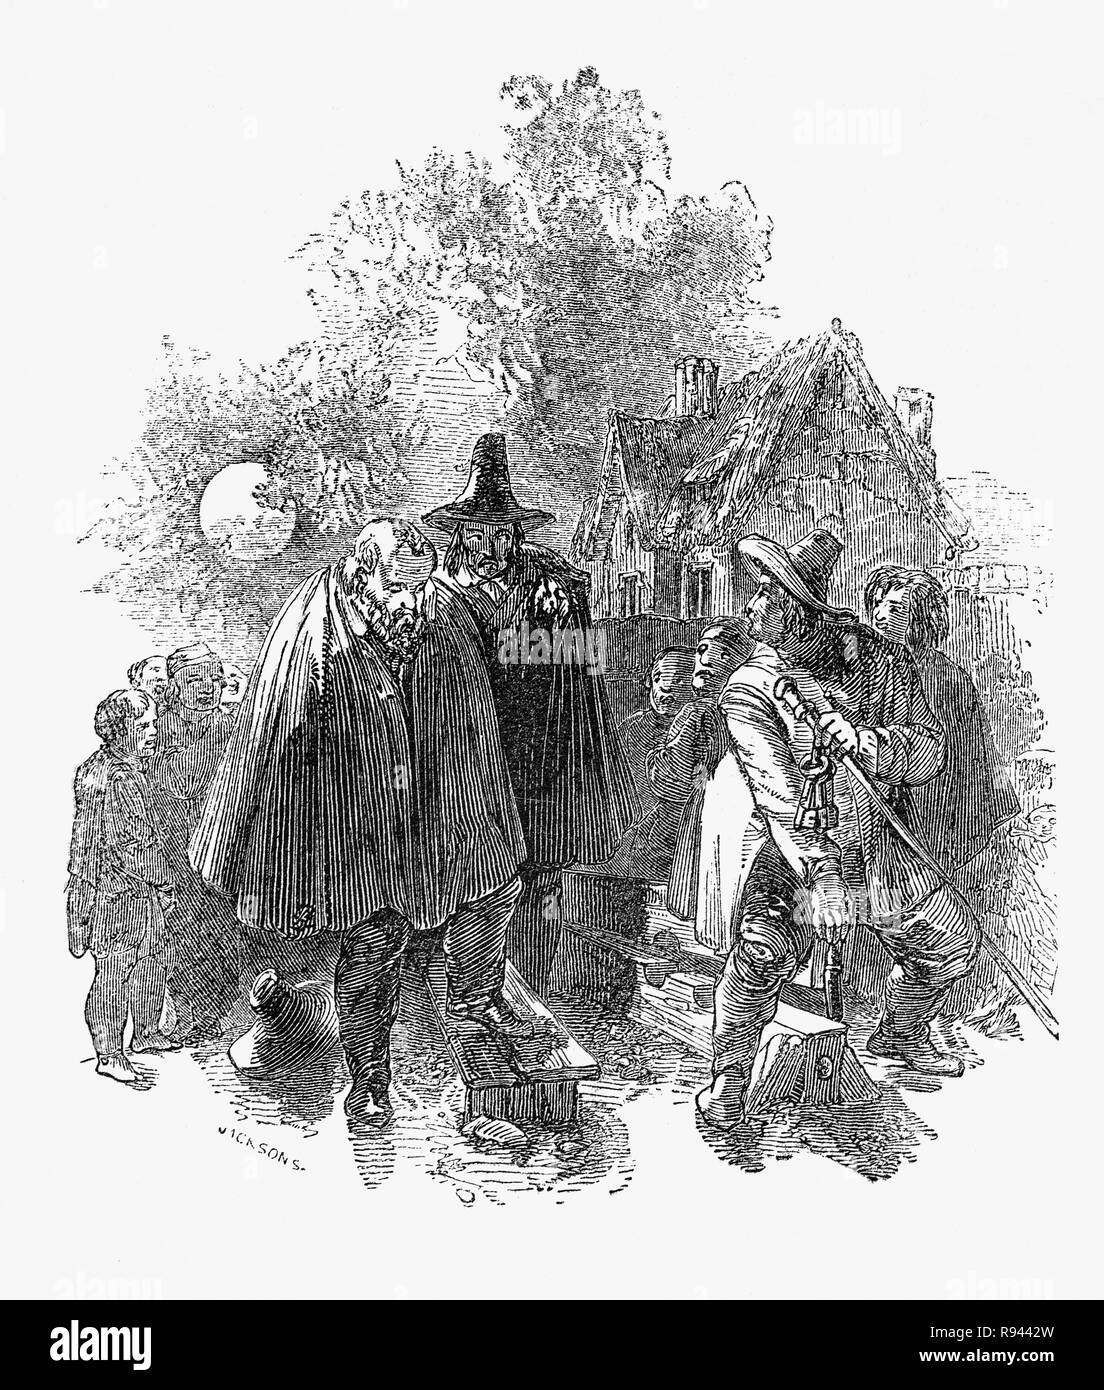 A scene from Hudibras, an English satirical polemic written by Samuel Butler(1613 – 1680), poet and satirist, mostly against Parliamenterians,Roundheads, Puritans, Presbyterians and other factions involved in the English Civil War of 1642-1651. The epic tells the story of Sir Hudibras and his squire, Ralpho who ride forth from the knight's home to reform what they call sins and what the rest of the world regards as mild amusement. Eventually Hudibras and Raphoe are released from the stocks. - Stock Image